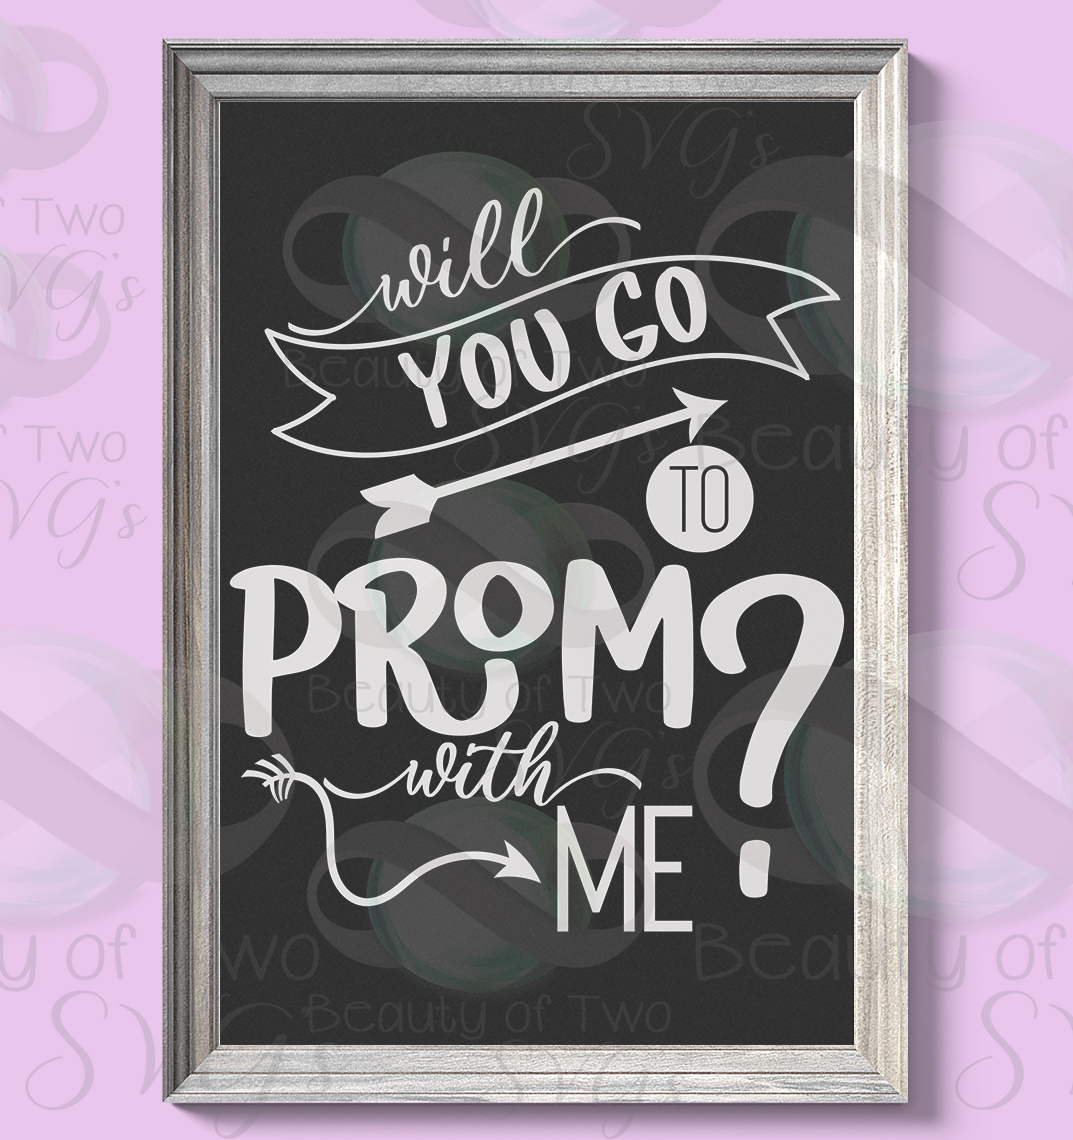 Prom Proposal svg and png, Prom svg, Prom date 2019 svg, example image 3